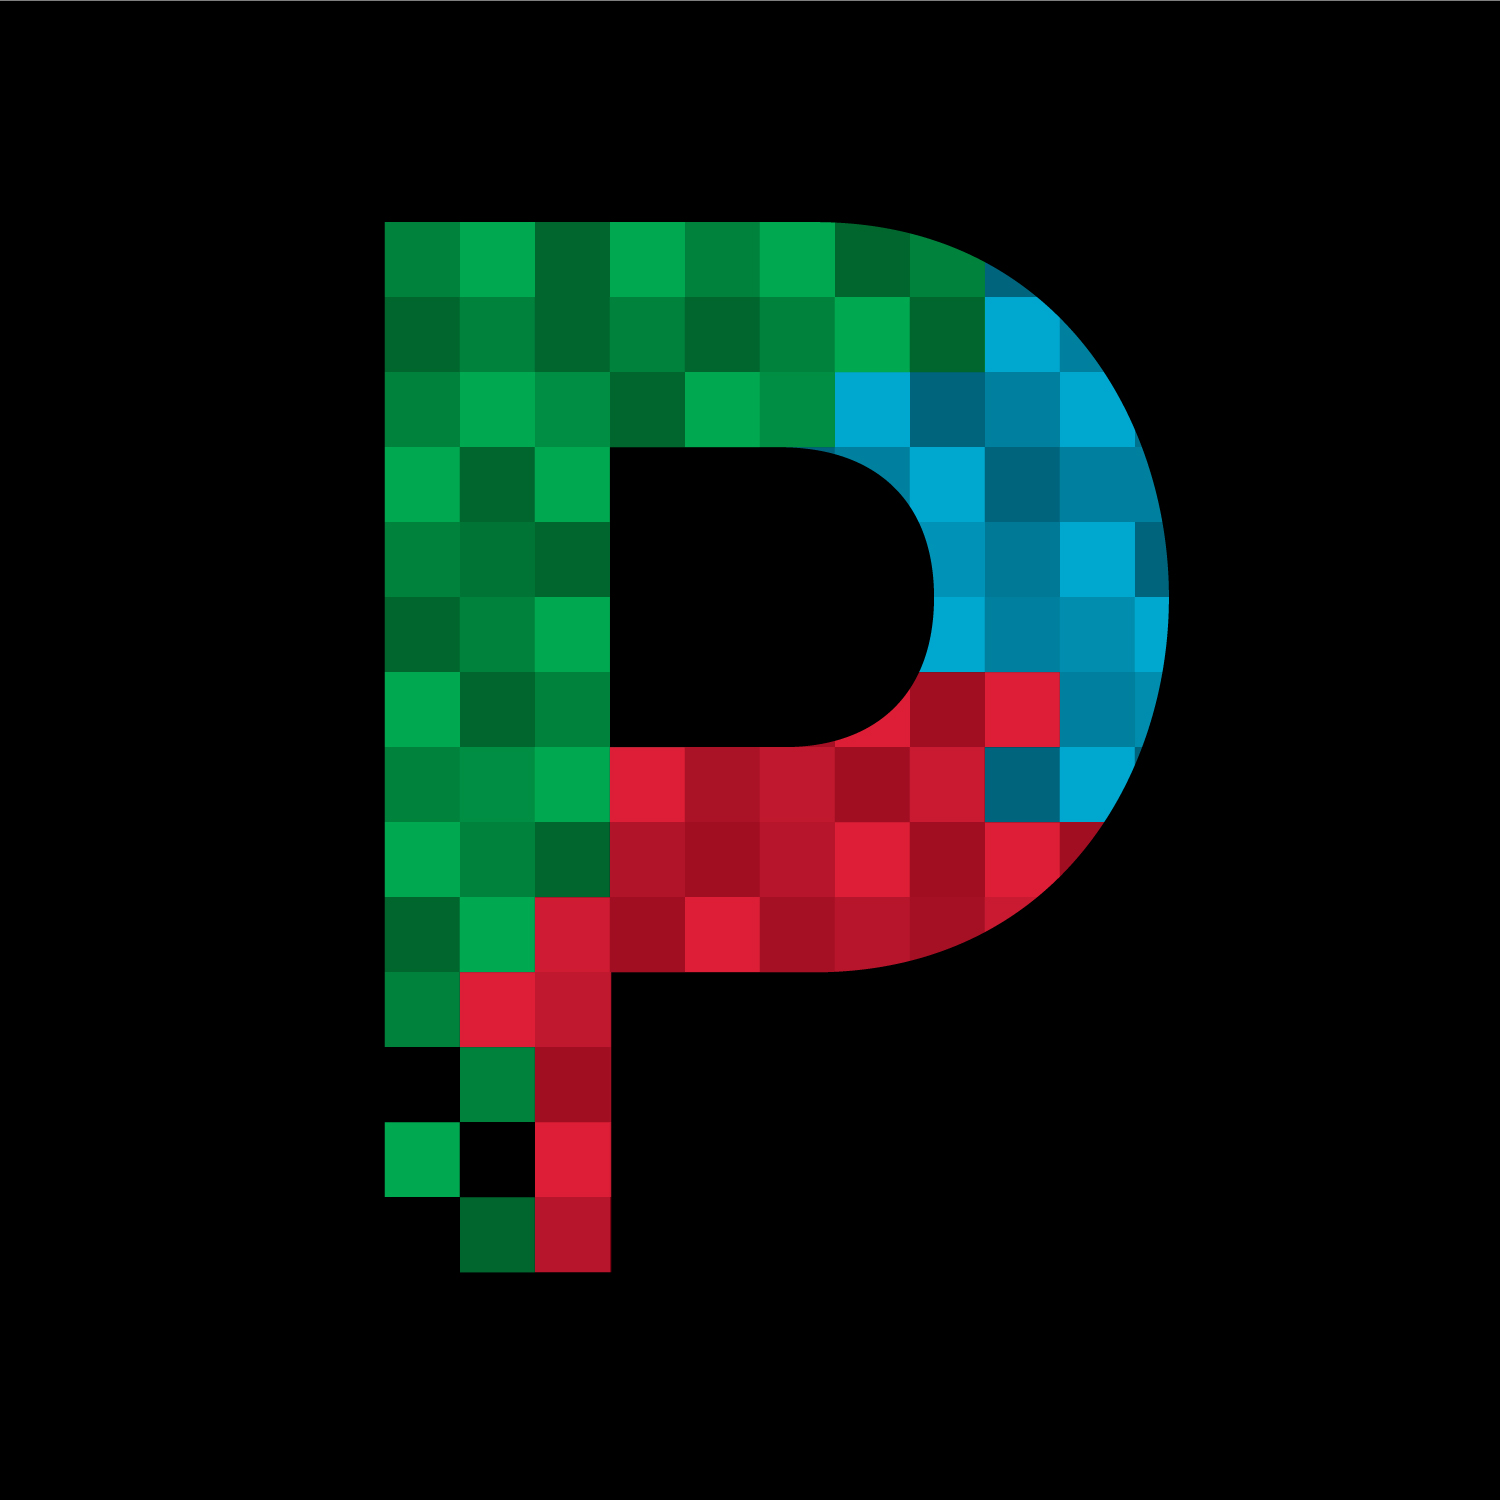 PIXELS - Describe the type of web work we do. Give it some flair. Ask me anything so we can talk about what goes here.